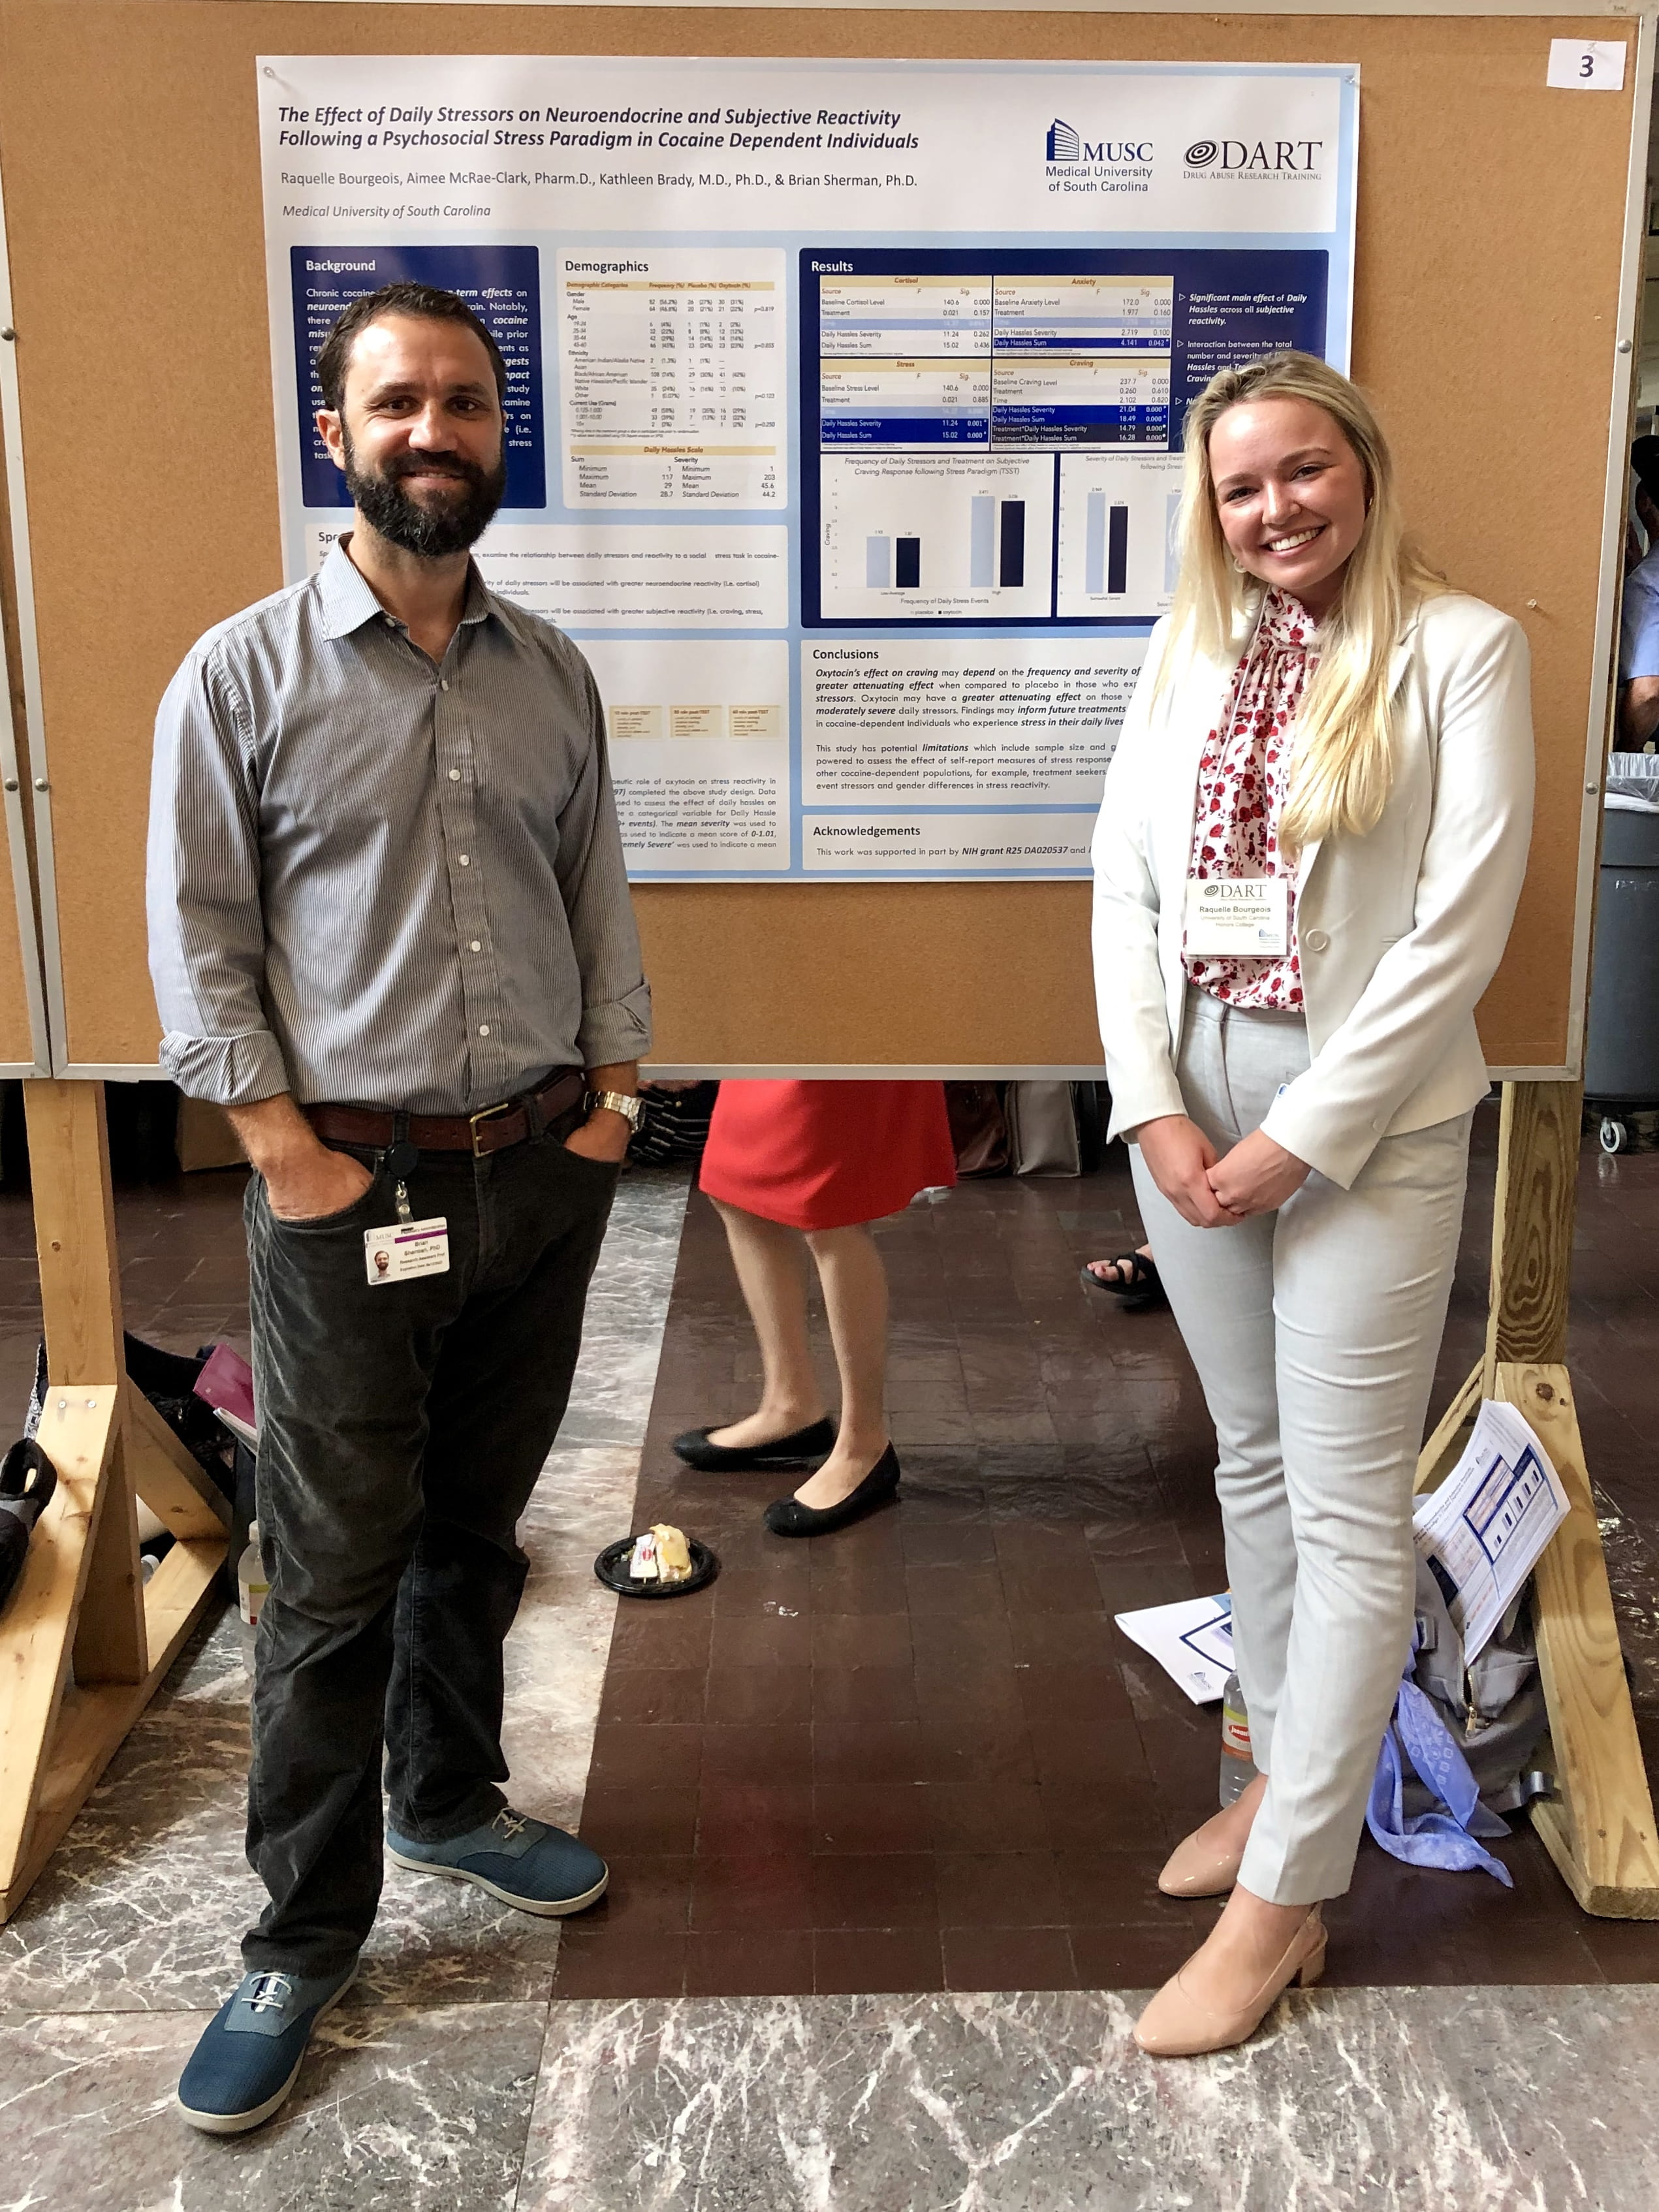 Brian Sherman and mentee, Raquelle Bourgeois, at Summer Research Day